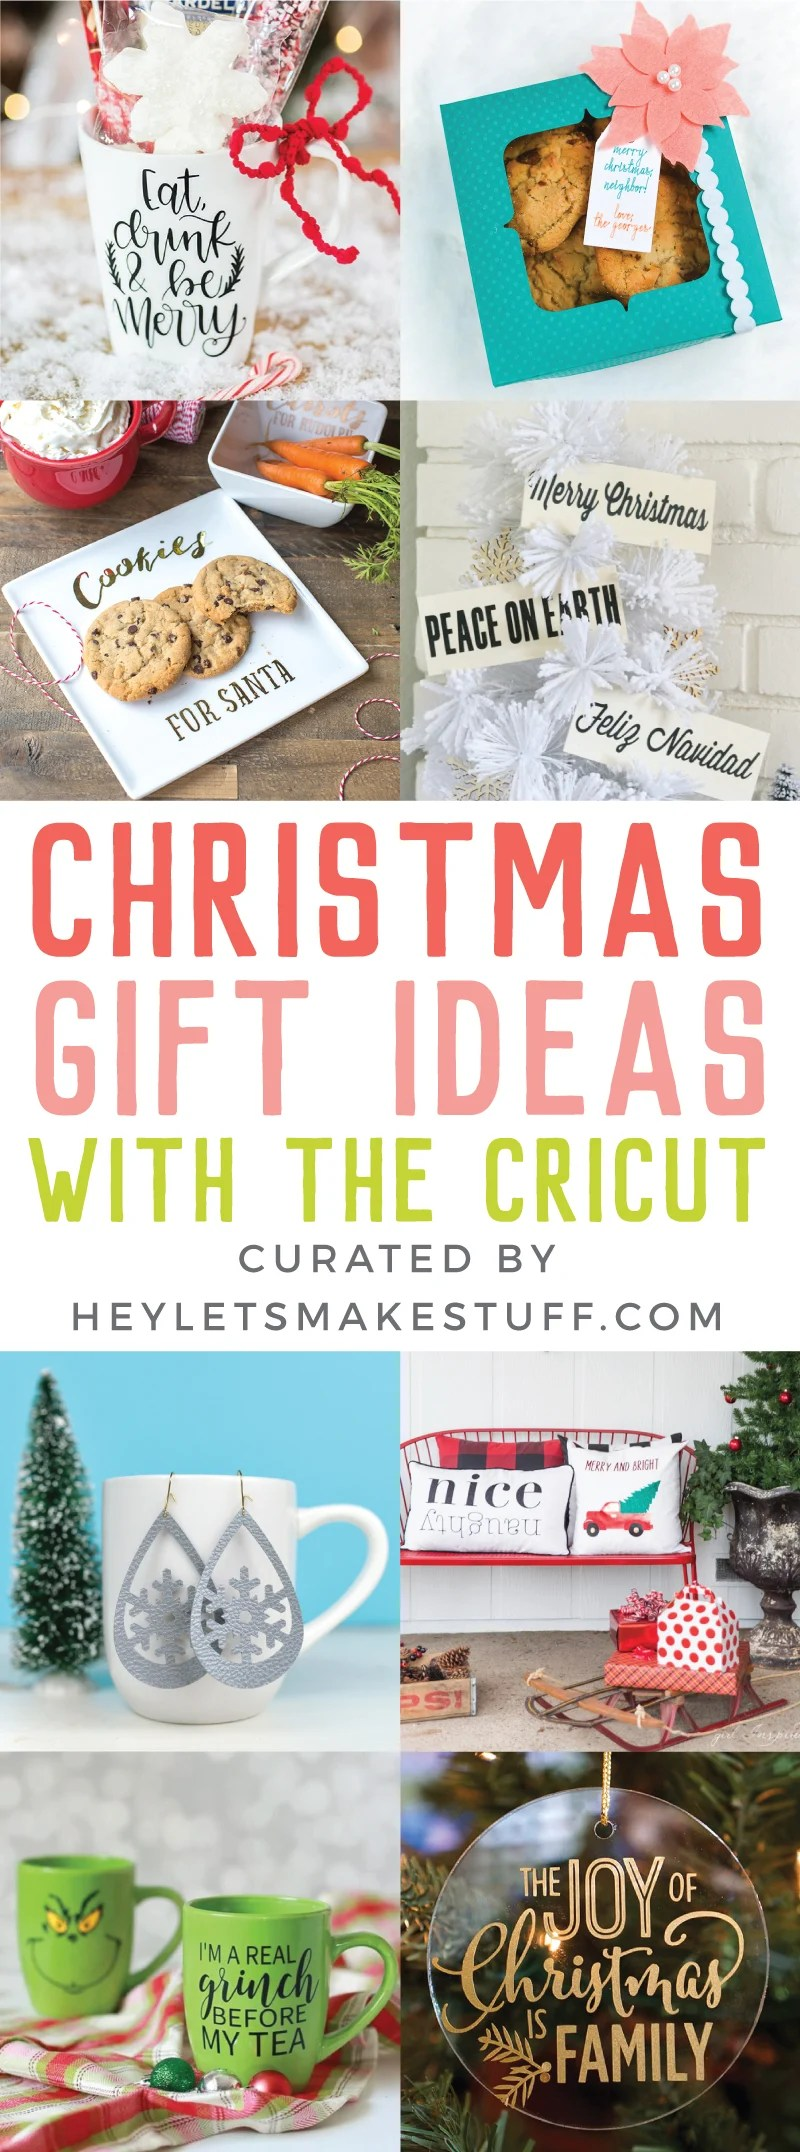 Let's get crafting for Christmas using the Cricut! Here are a ton of easy Cricut gift ideas that are easy and fun to make using your Explore or Maker! via @heyletsmakestuf